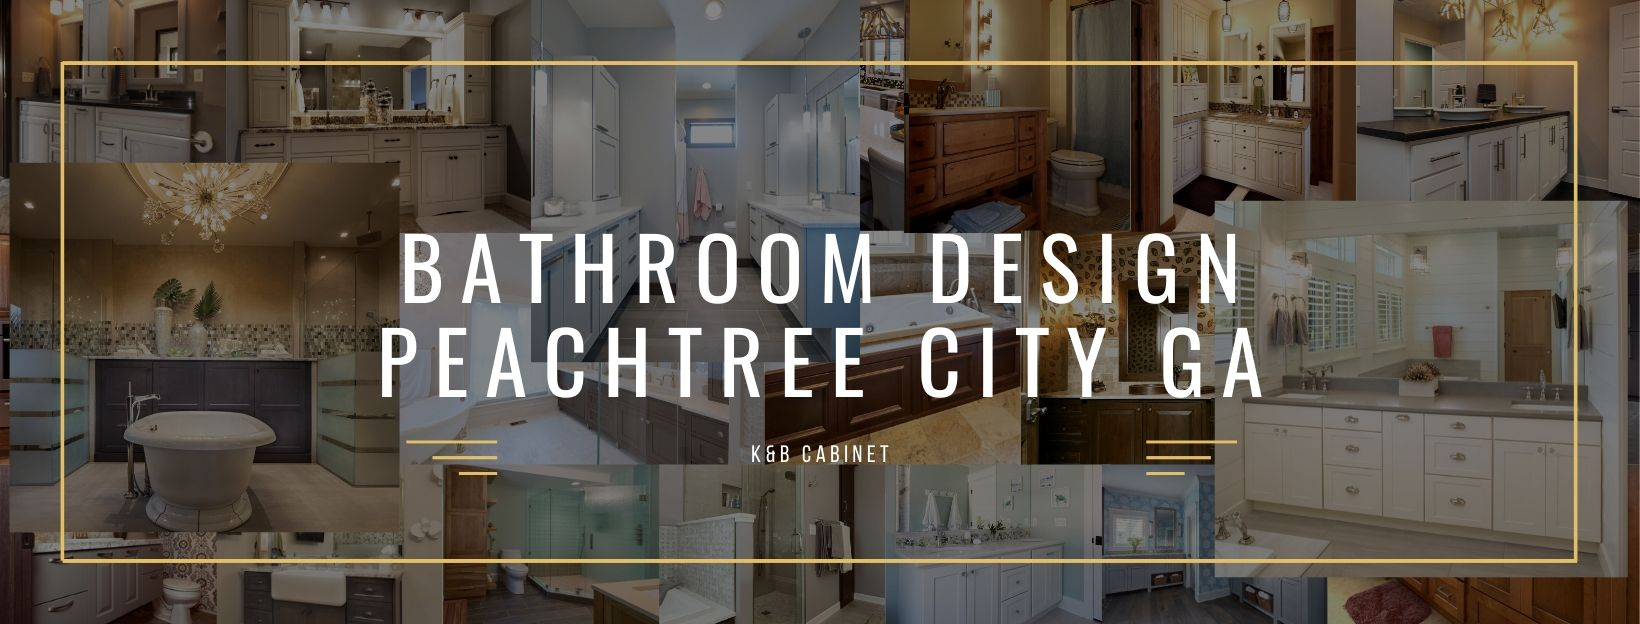 Bathroom Design Peachtree City GA